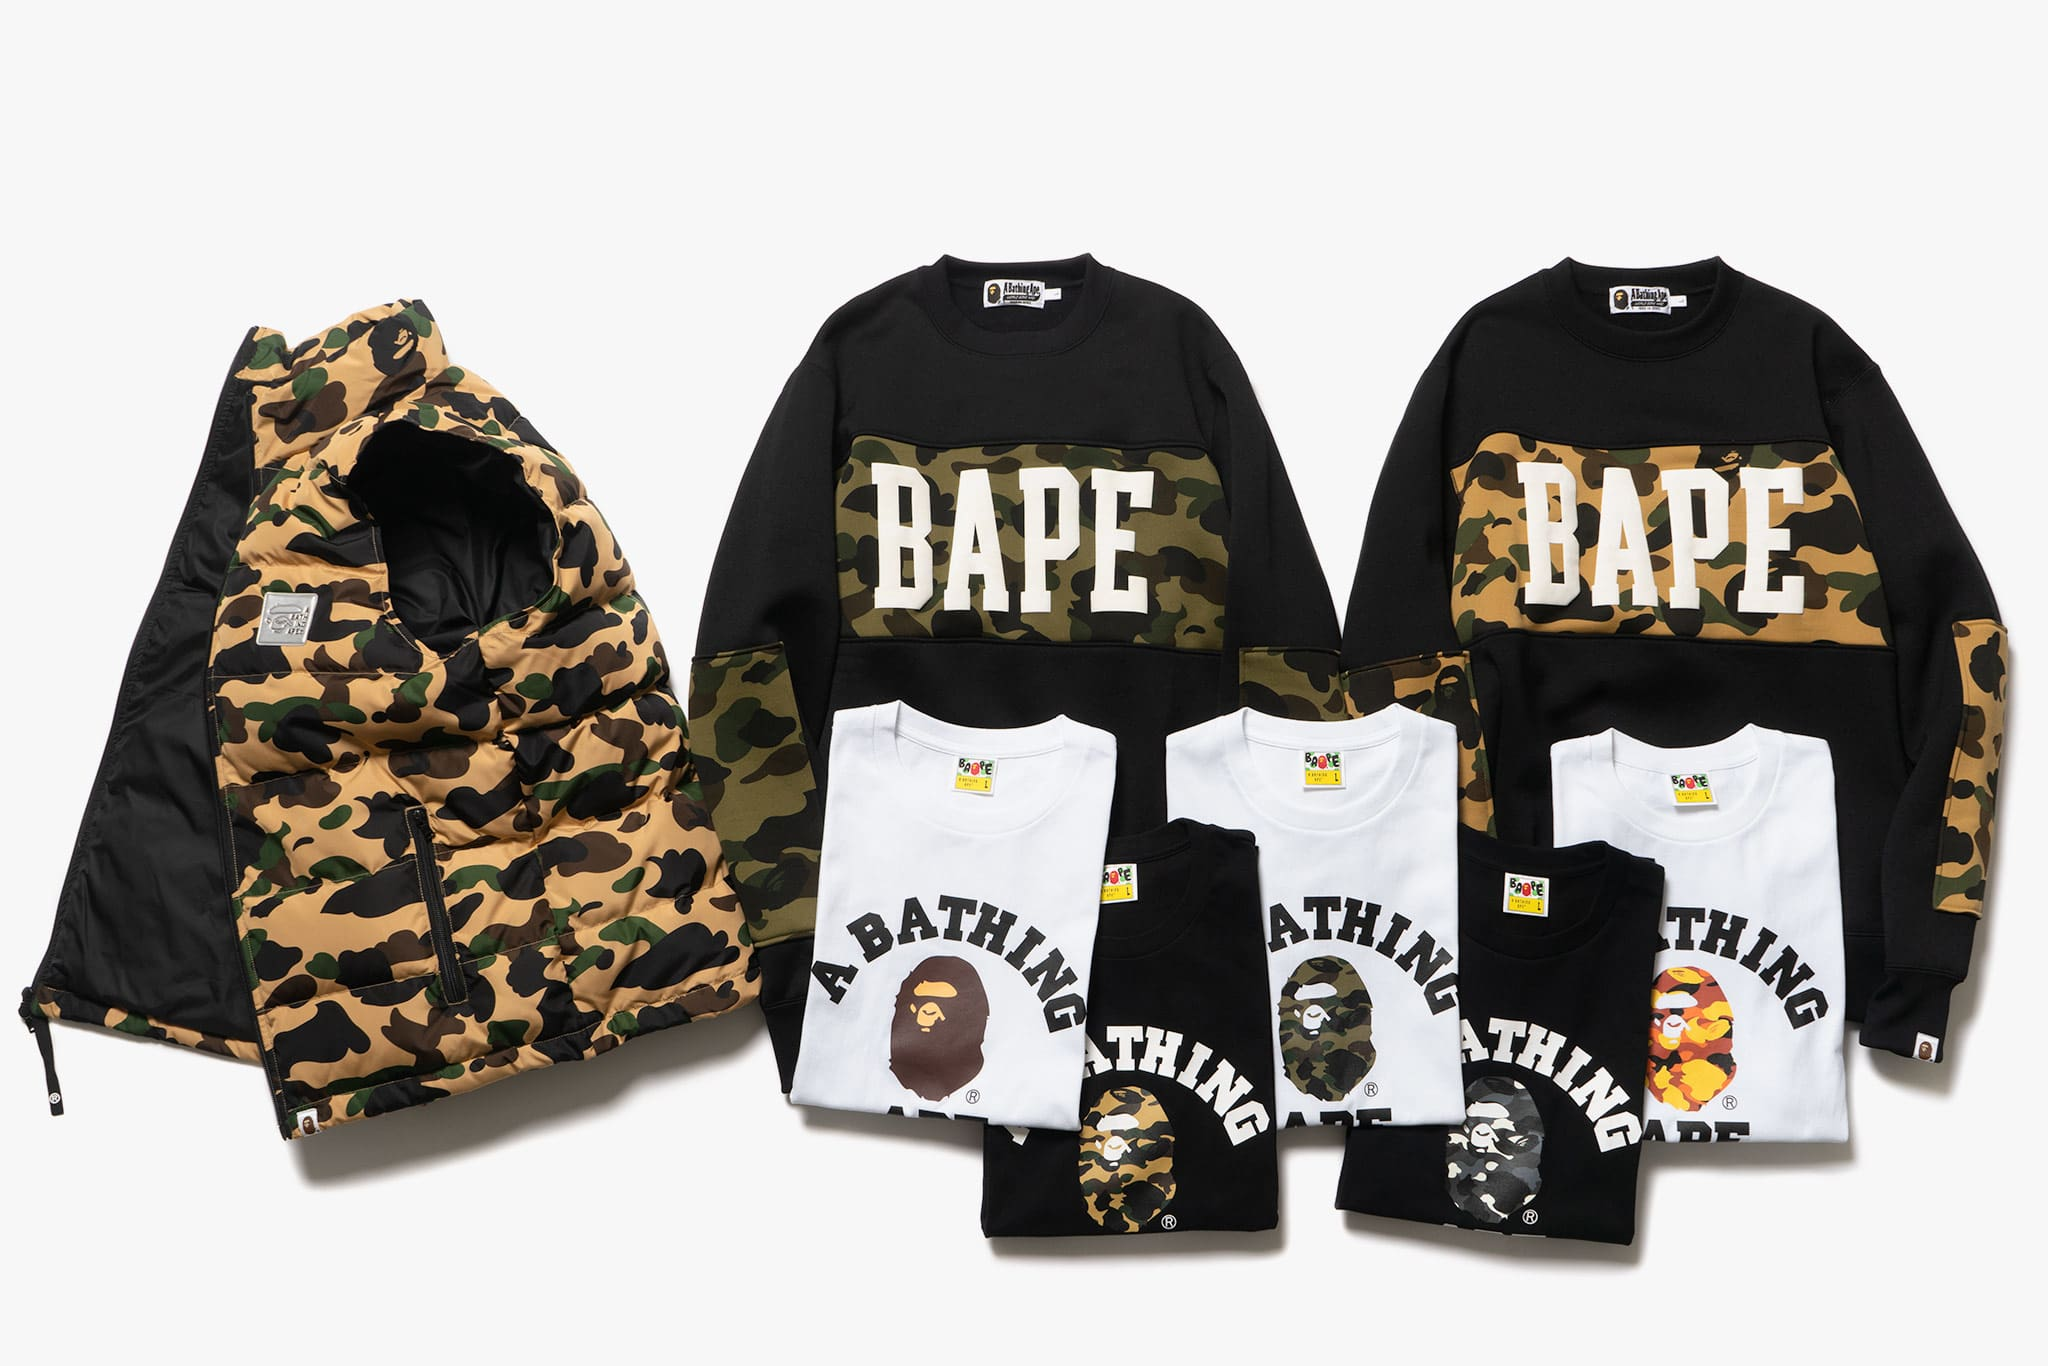 a4c7f5f3 A BATHING APE | FW18 Delivery 2 | In-Store Release Date 09.08.18 | HAVEN